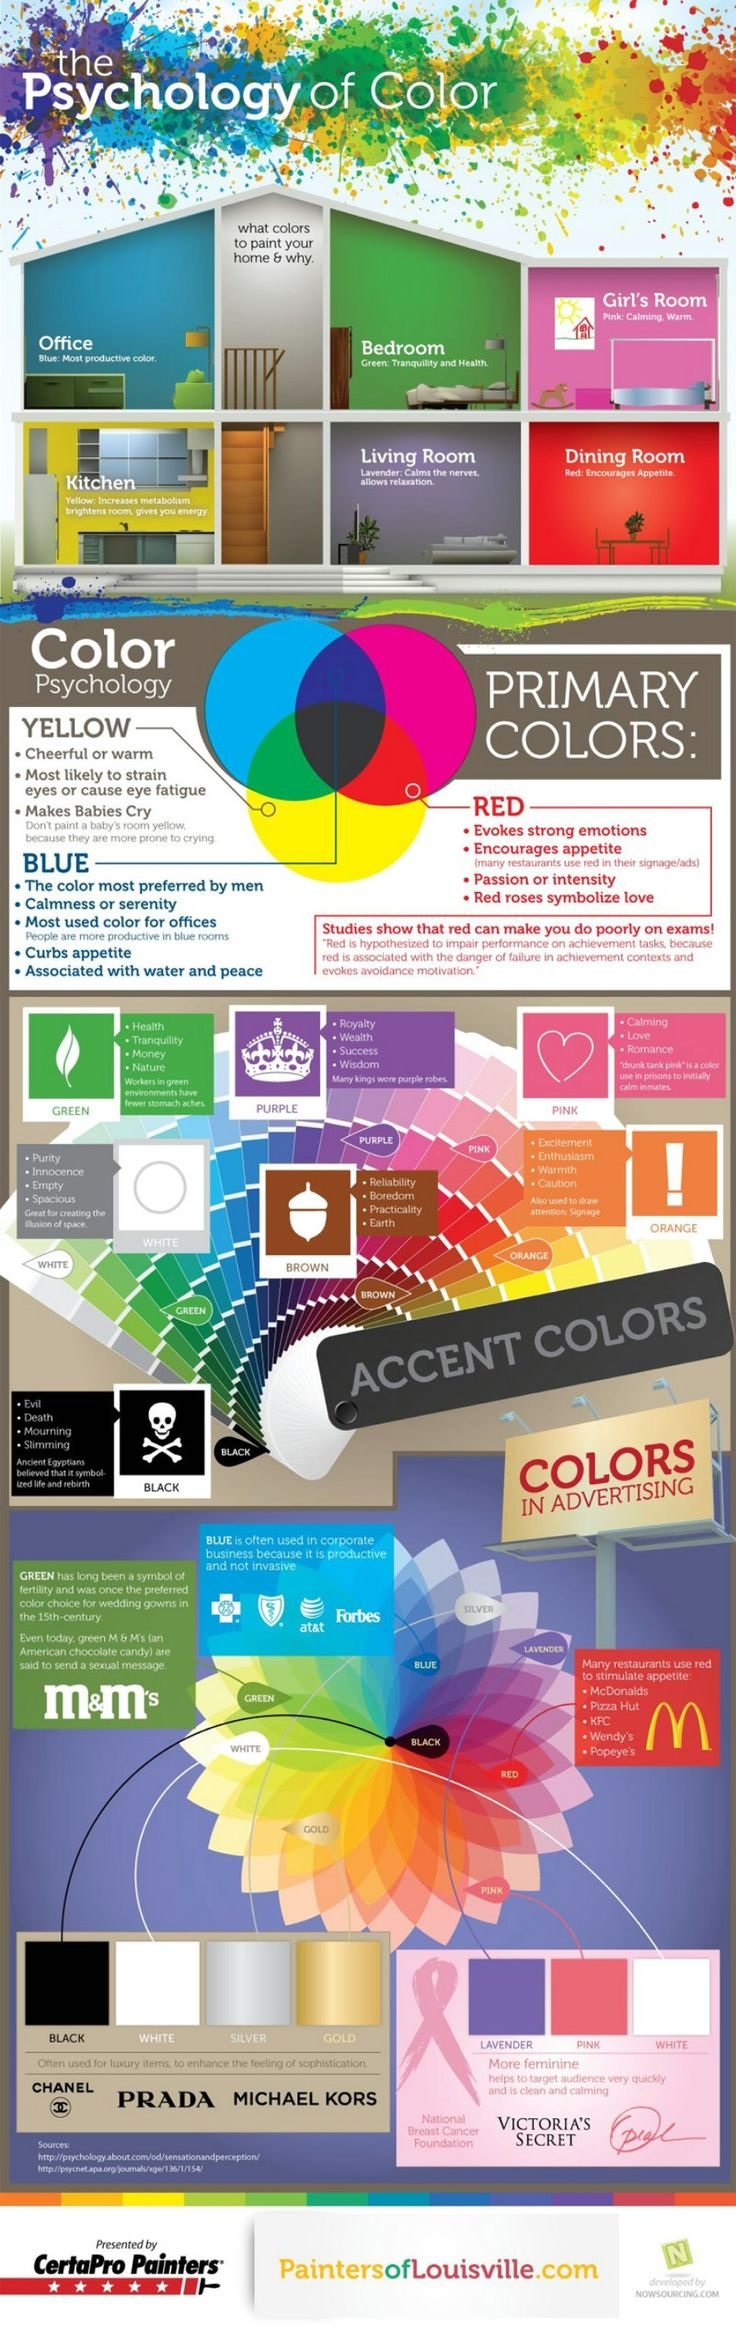 best 25 3d interior design ideas on pinterest autocad layout discover color psychology 50 amazingly clever cheat sheets to simplify home decorating projects